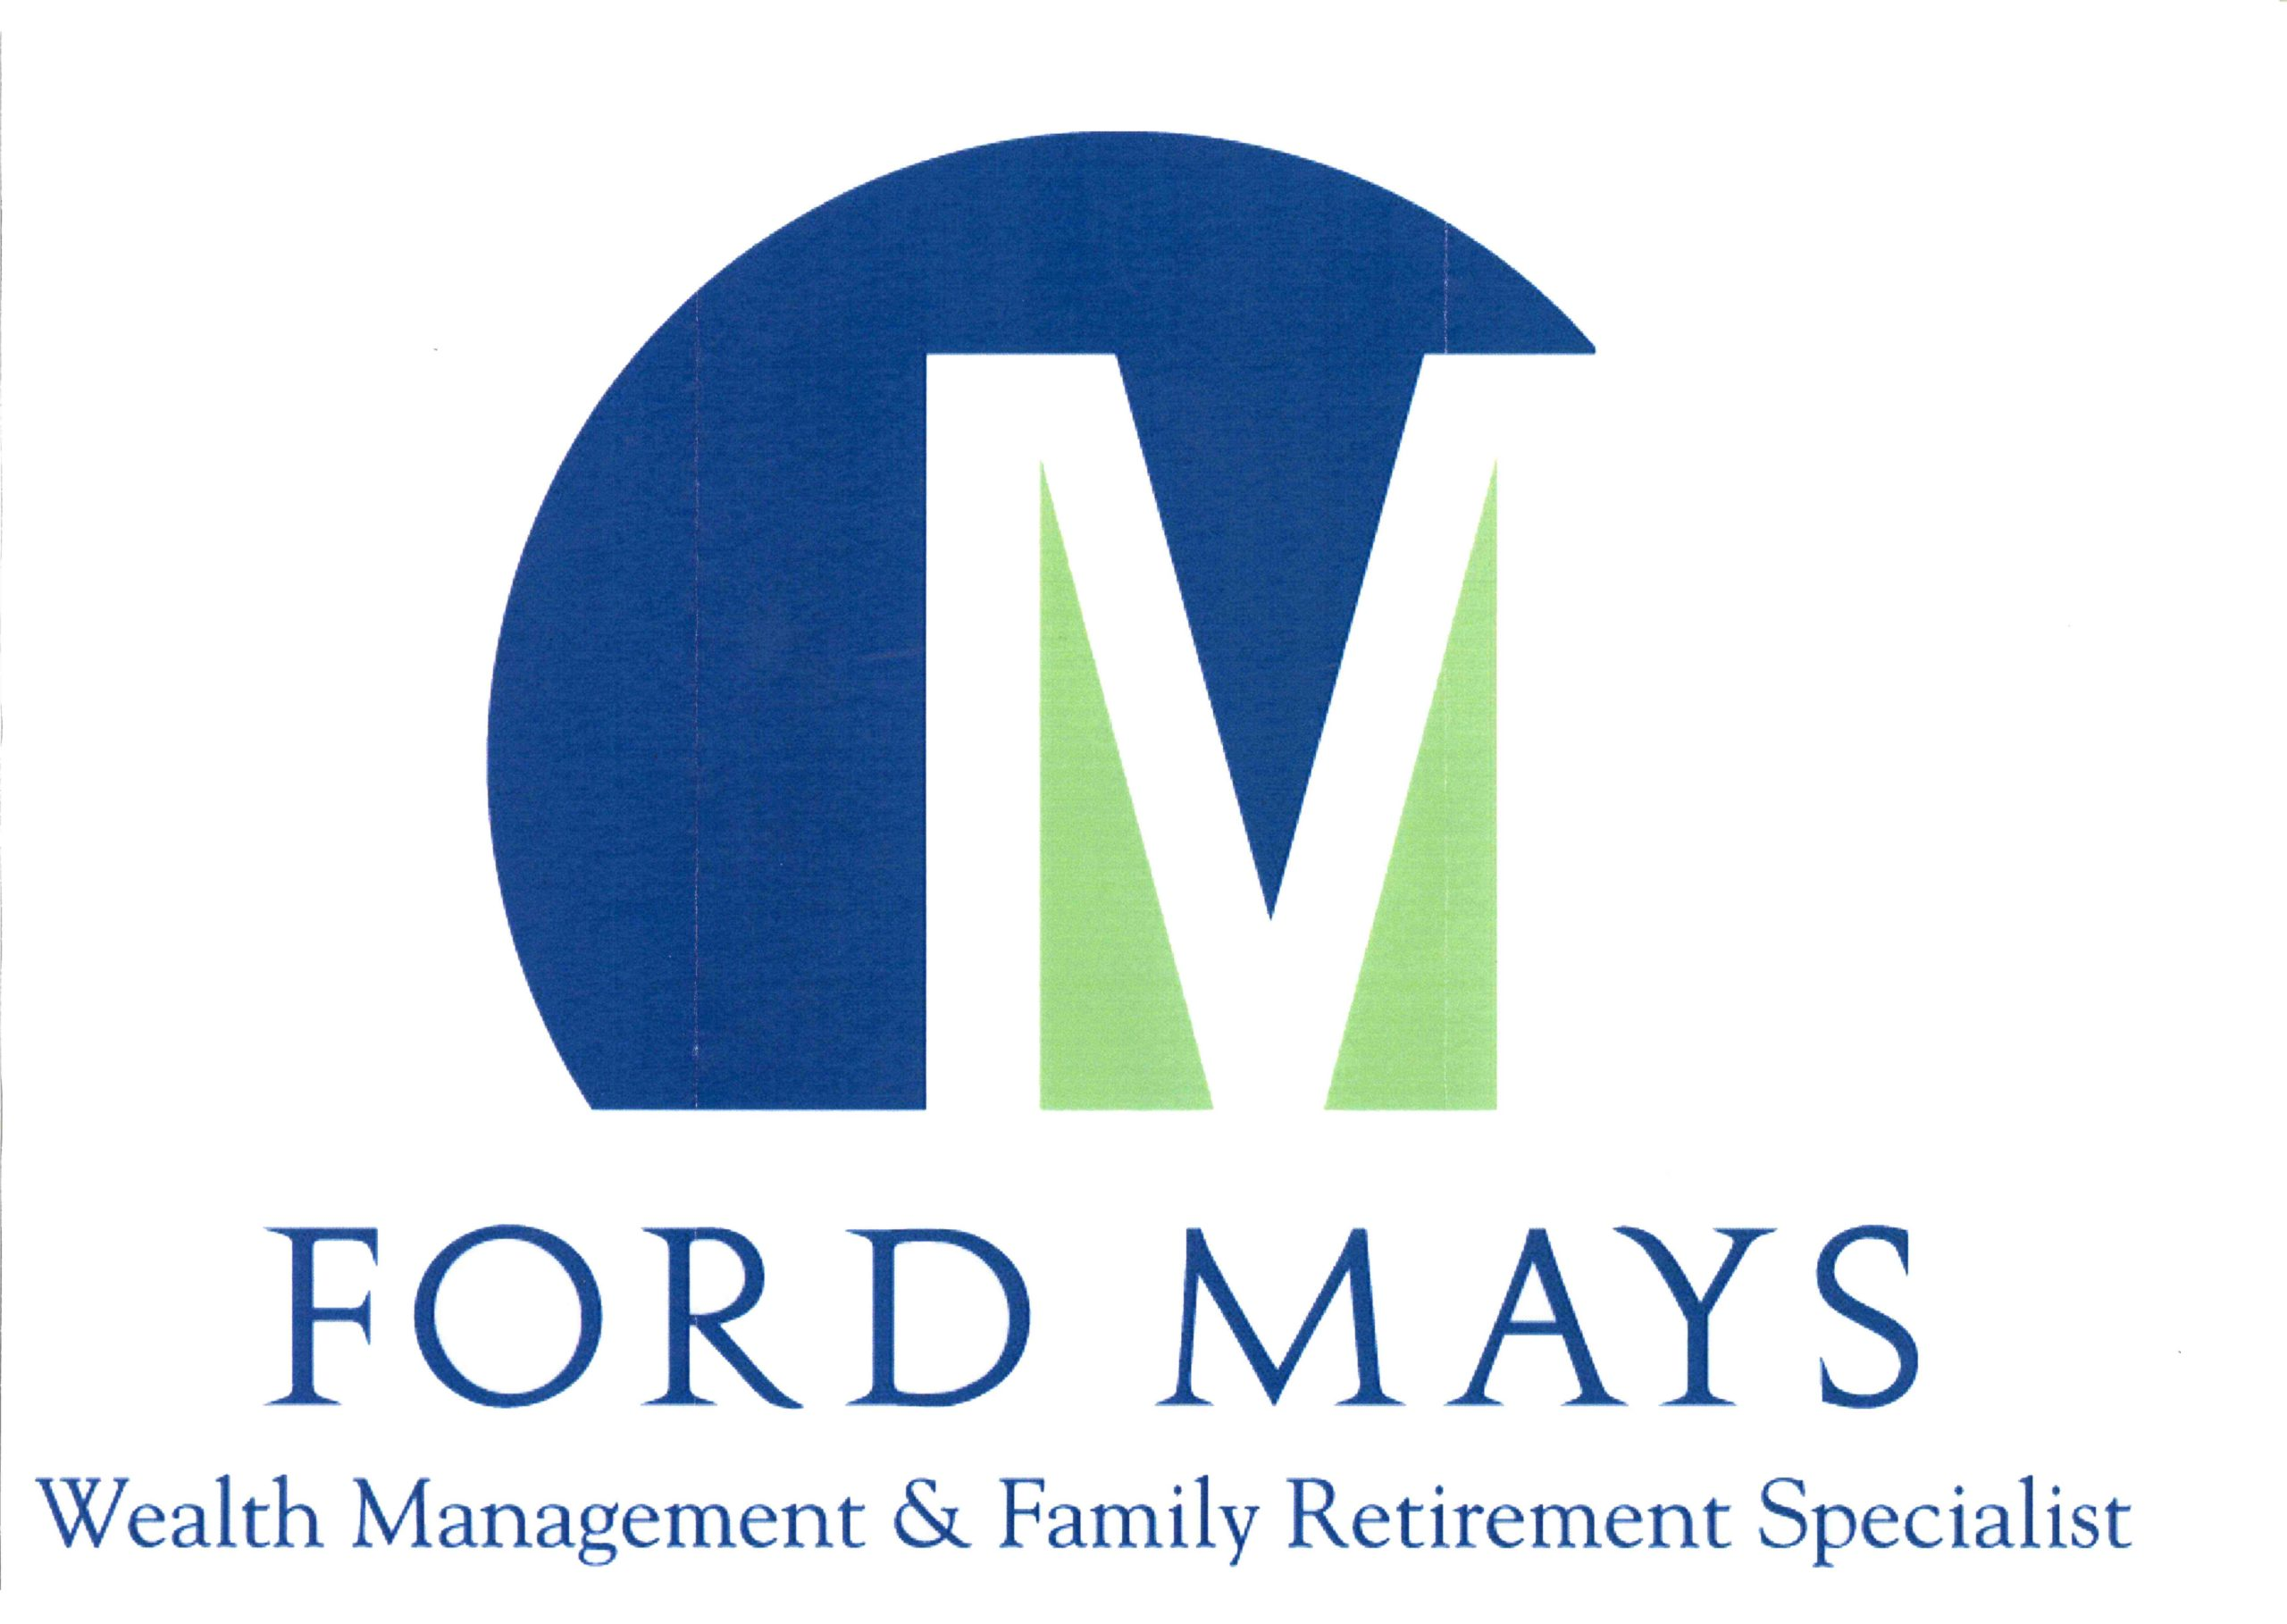 Ford Mays